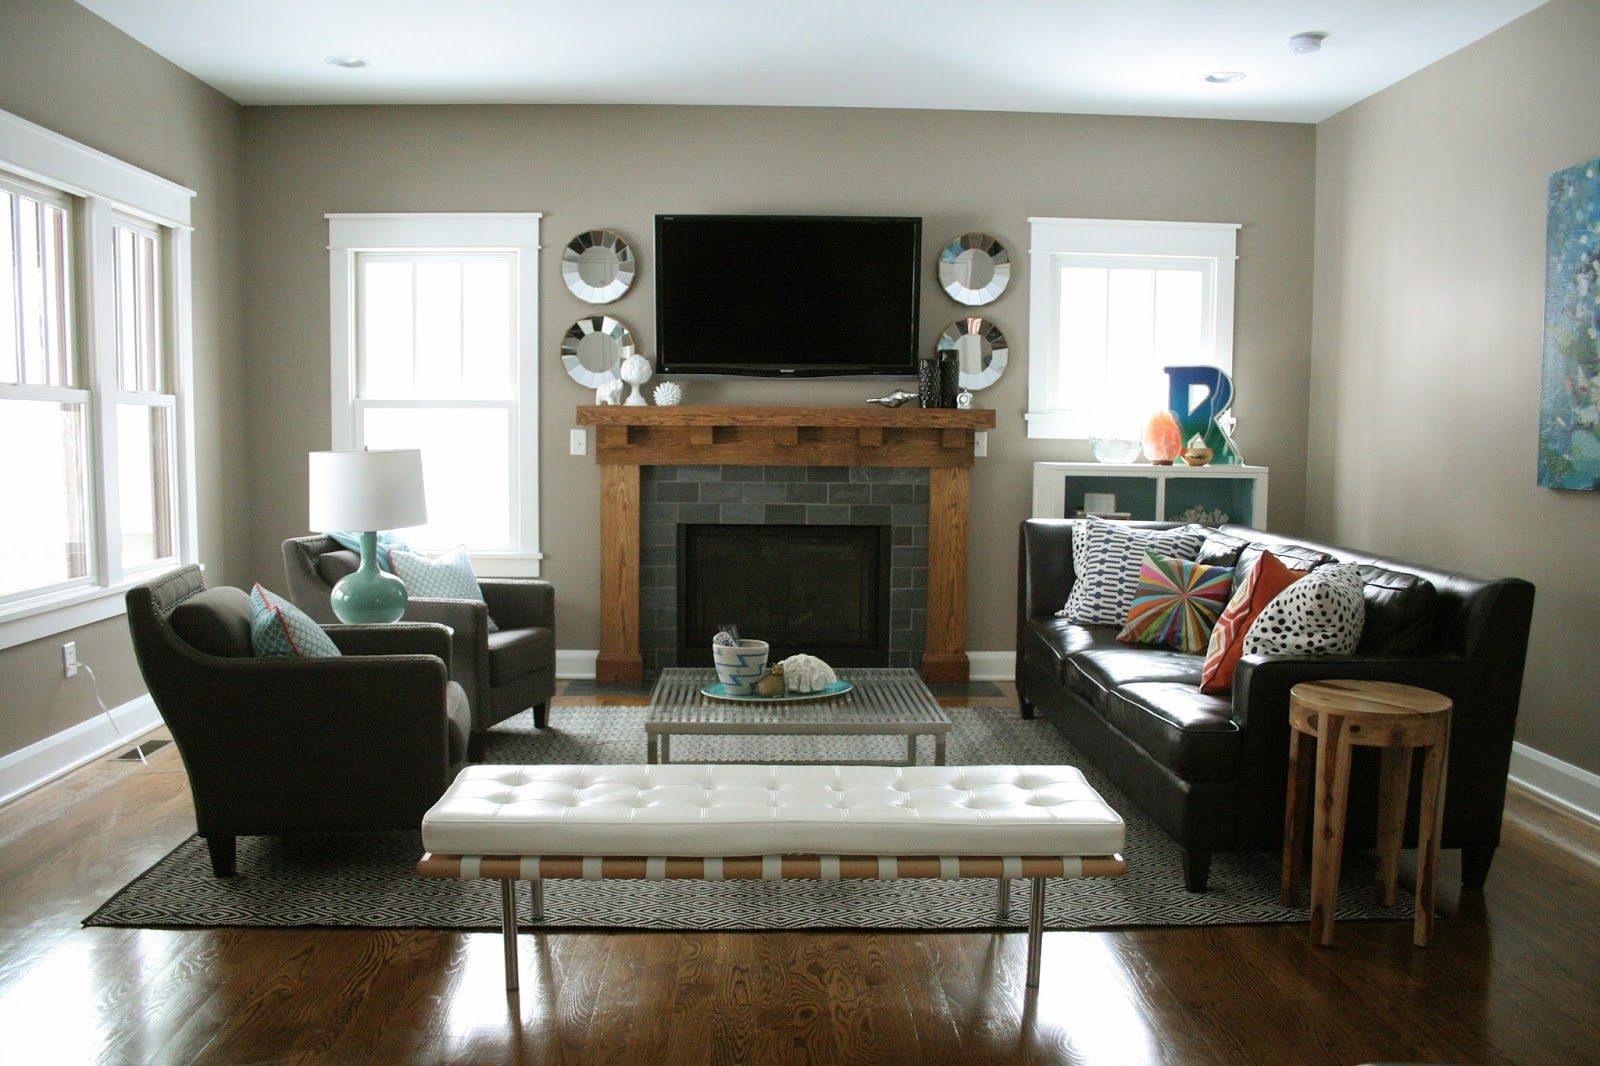 Living Room Designs Layouts Furniture Placement Layout Fireplace And Tv Small Sectionals For Rooms